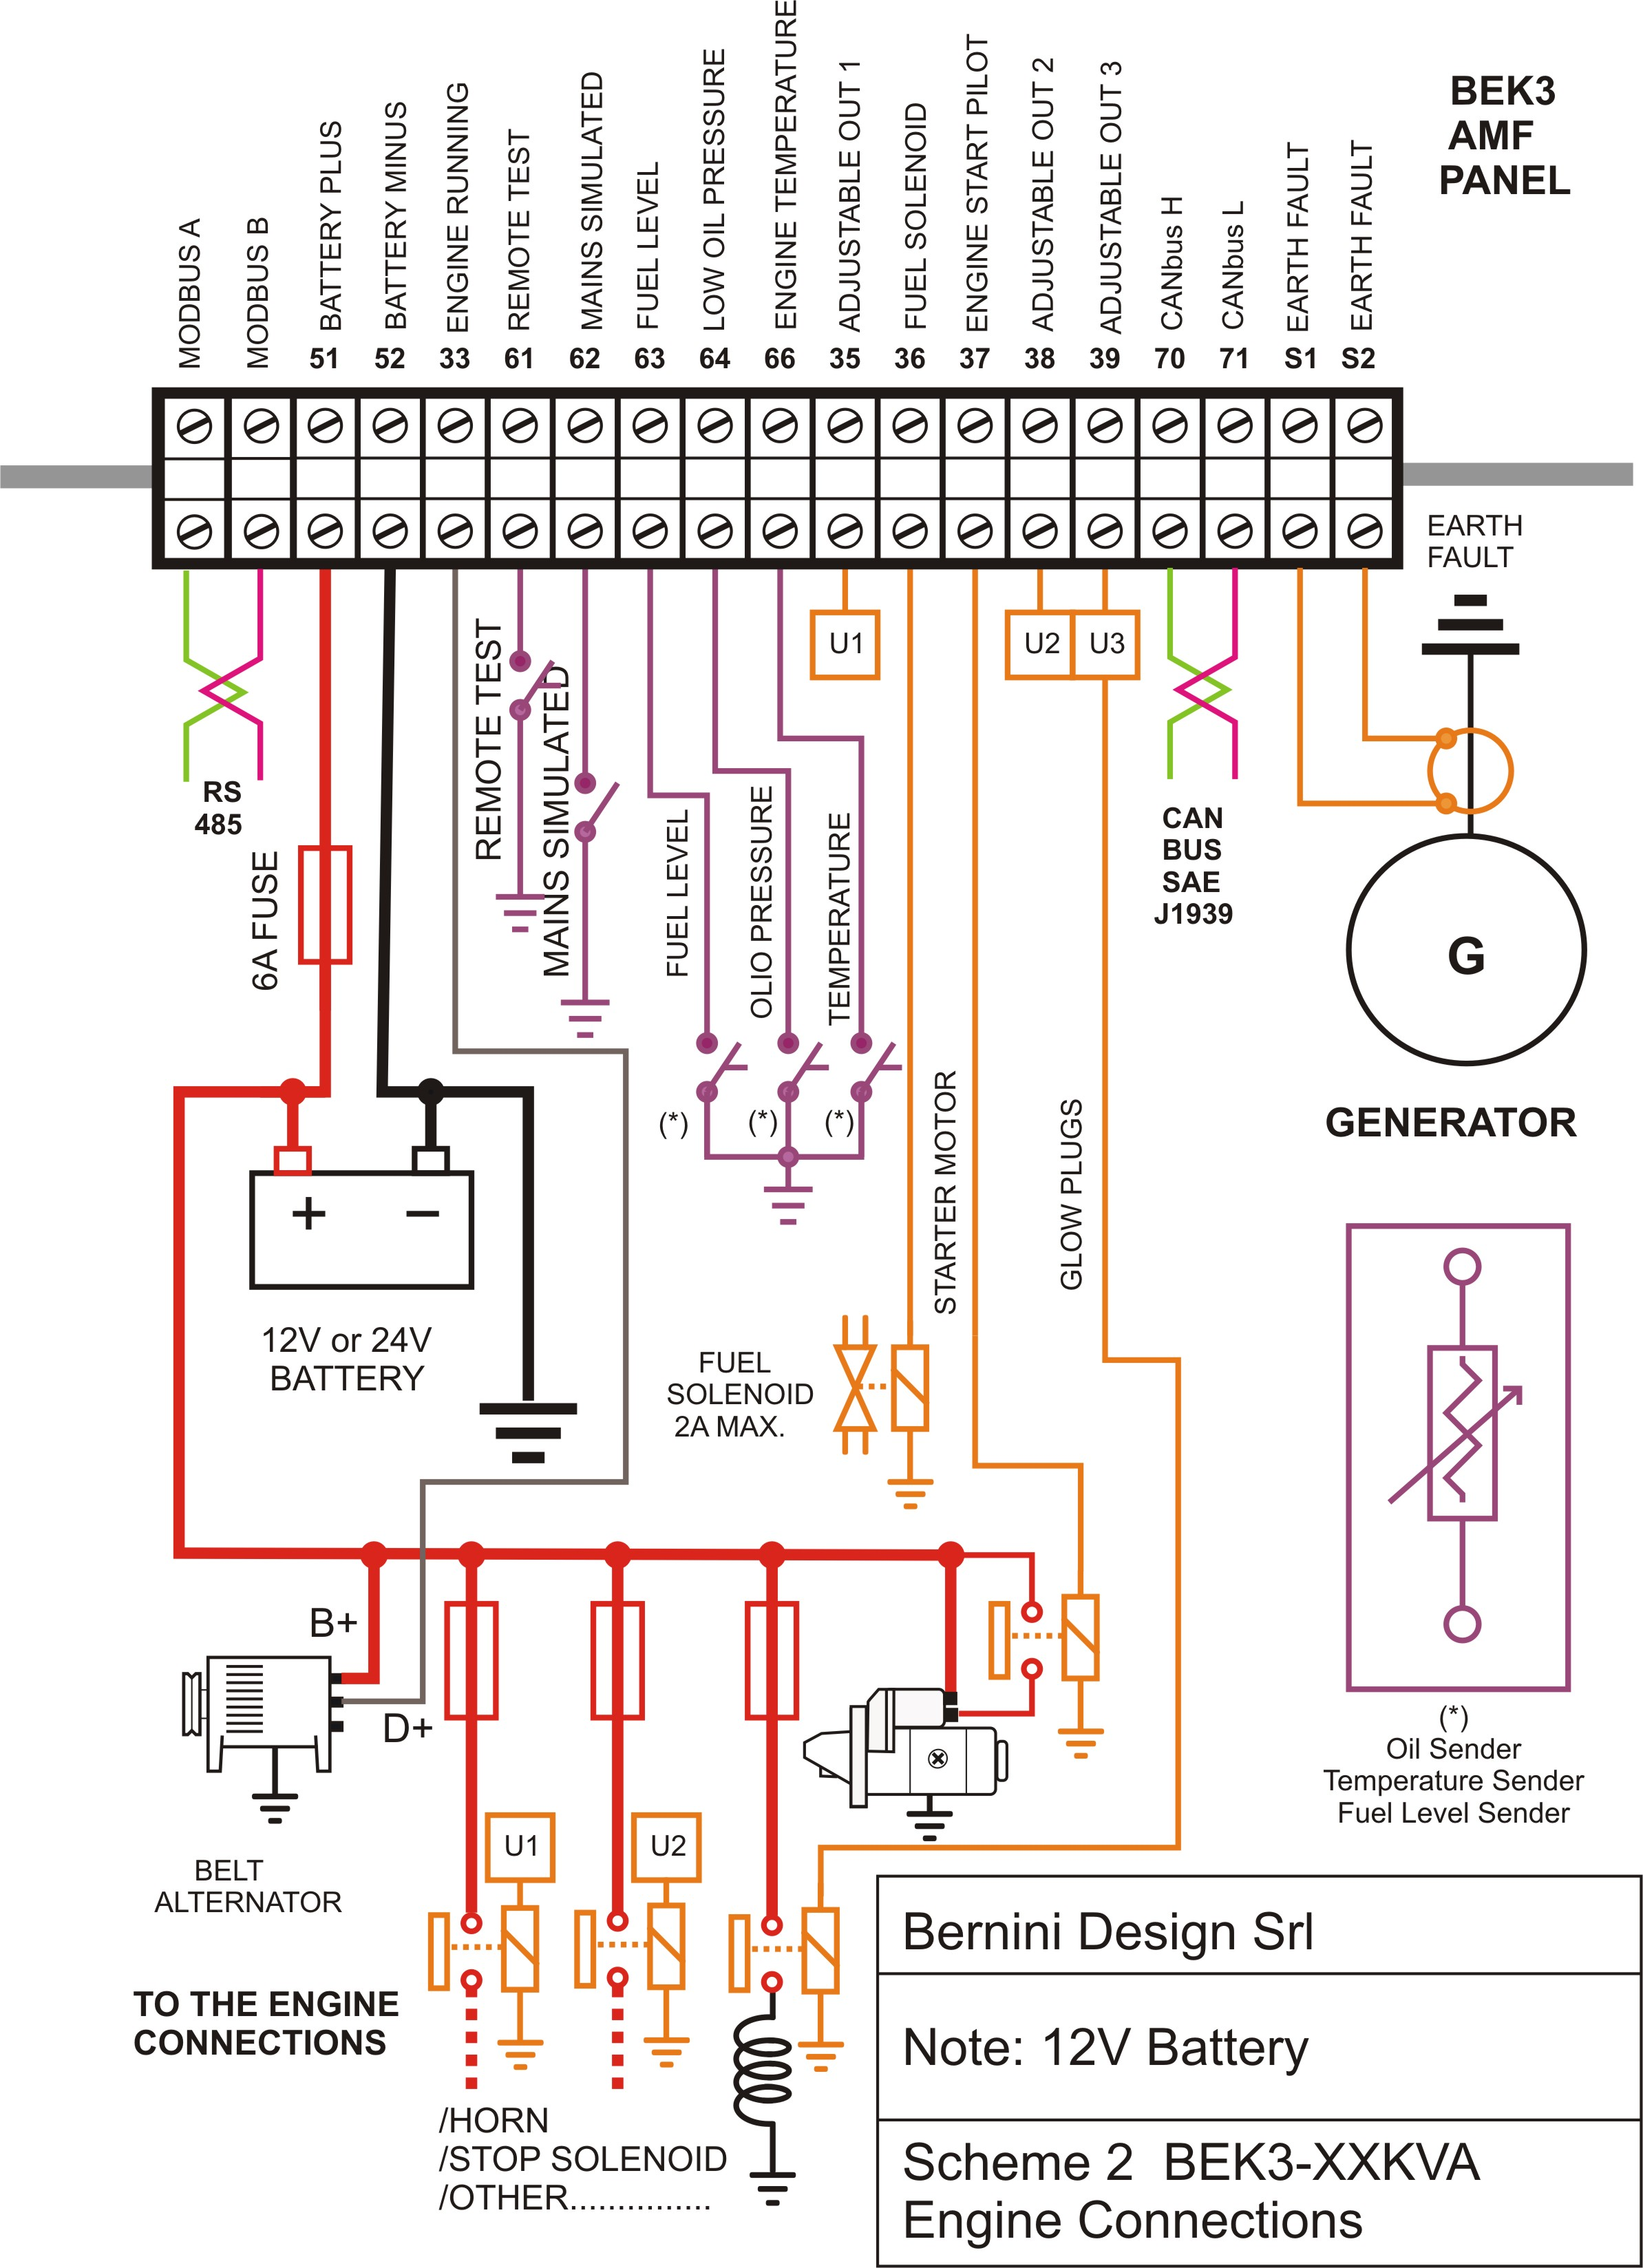 AMF Control Panel Circuit Diagram PDF Engine Connections dse704 wiring diagram gmc fuse box diagrams \u2022 wiring diagrams j beka max wiring diagram at panicattacktreatment.co